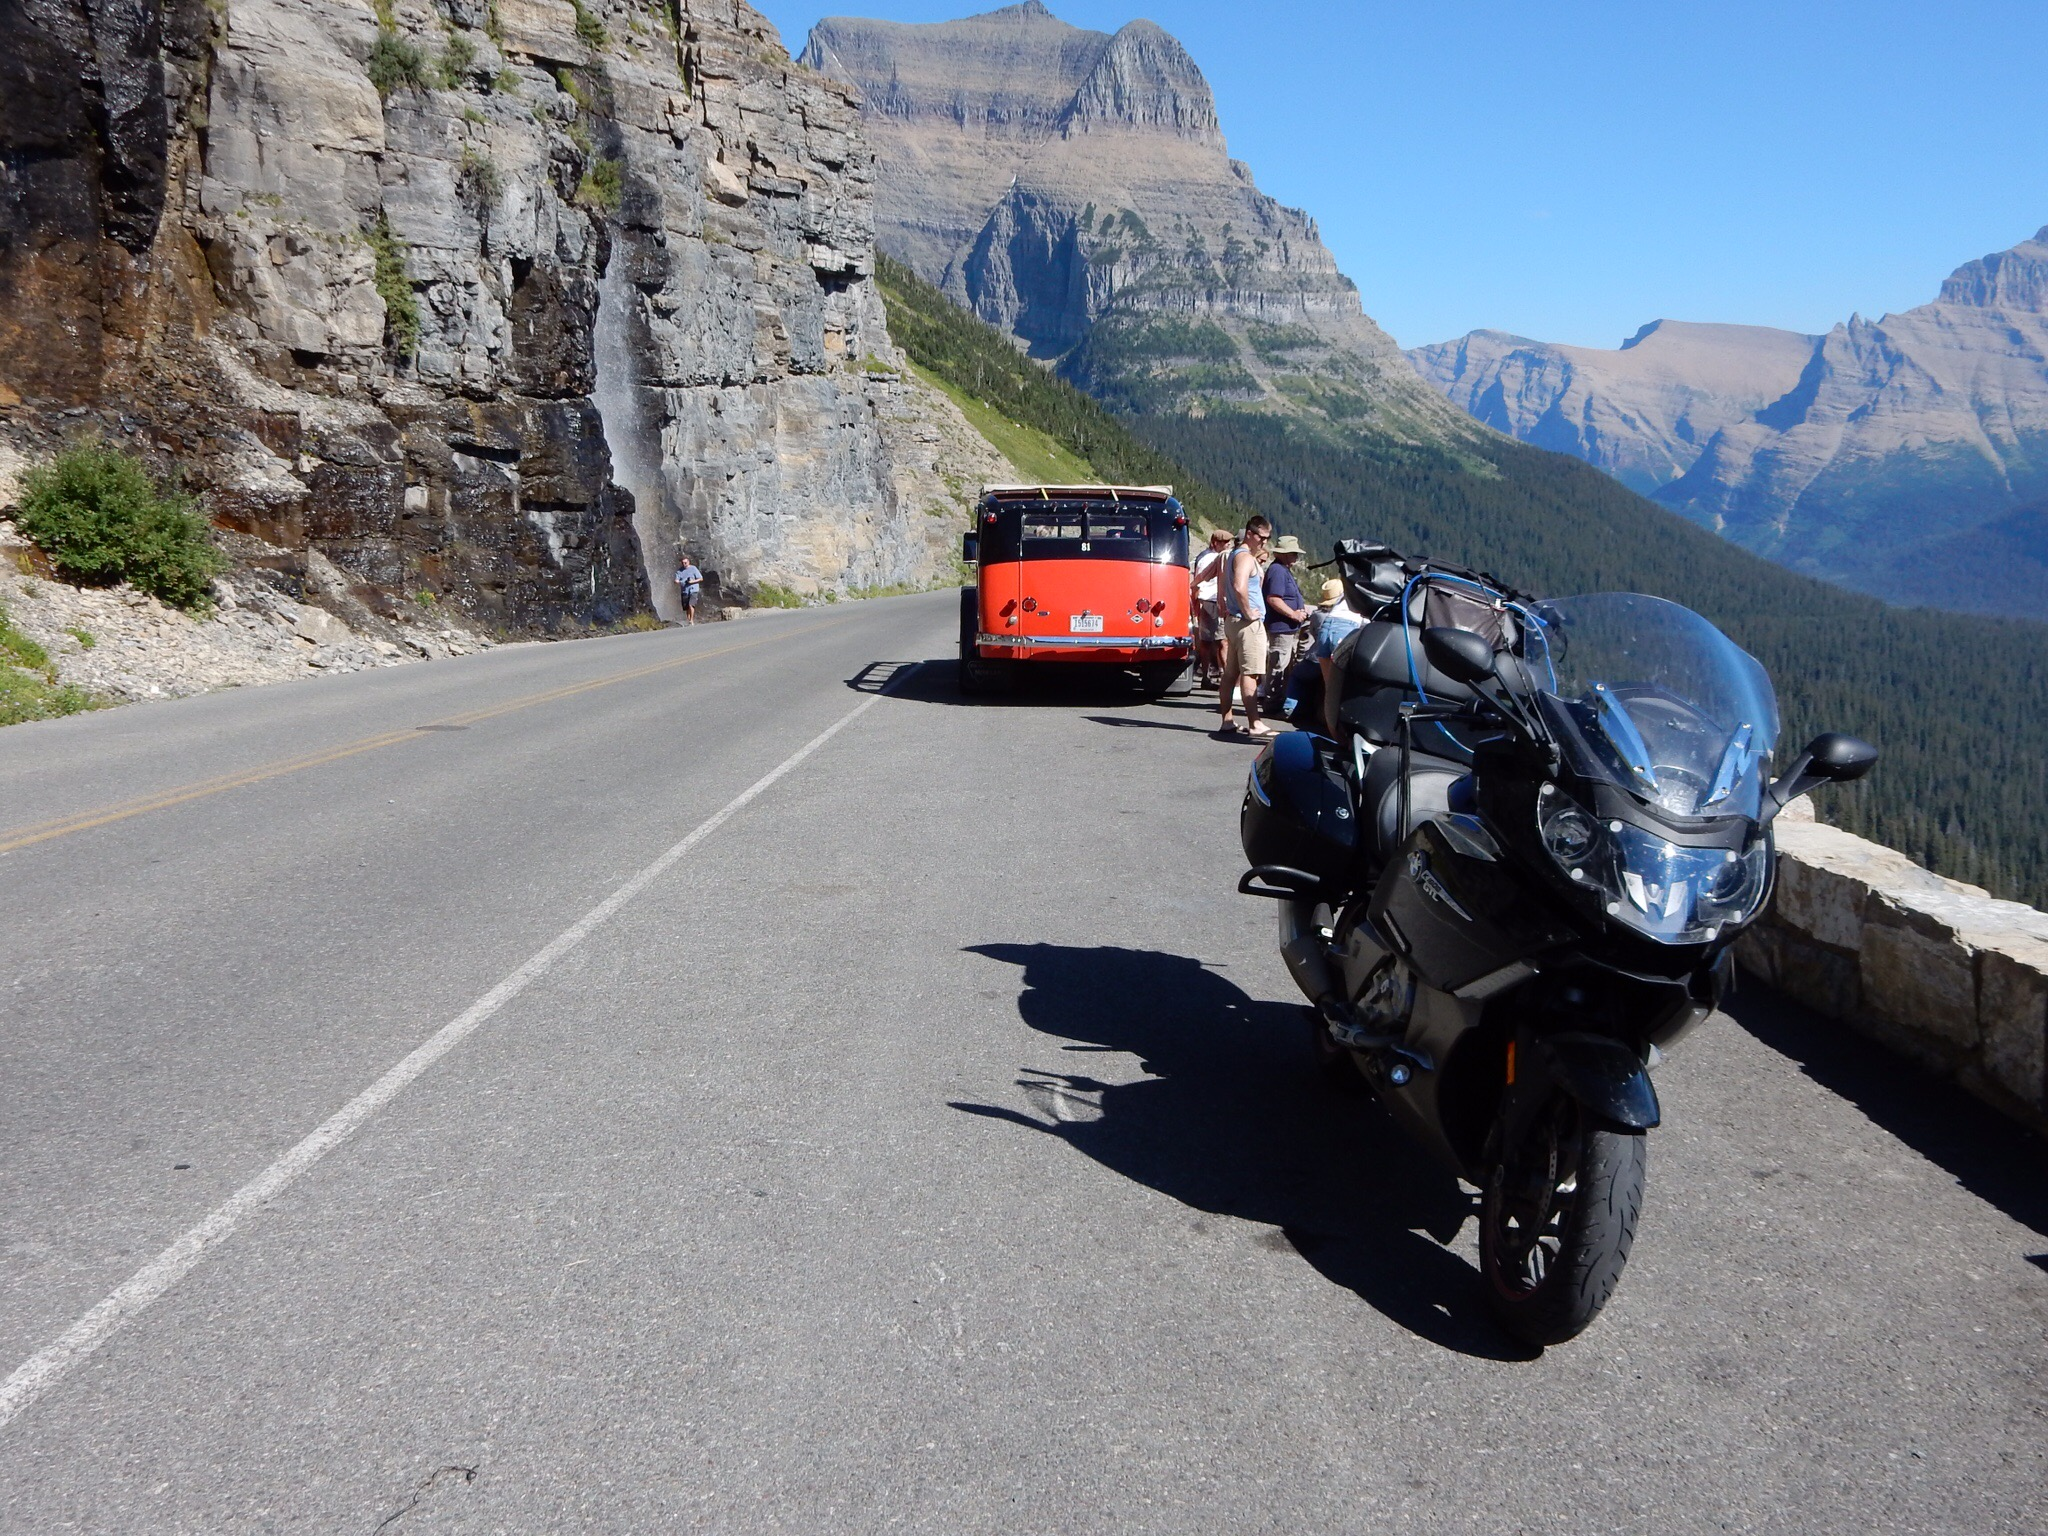 The Nightowl and a classic tour bus on the Going-to-the-Sun Road.